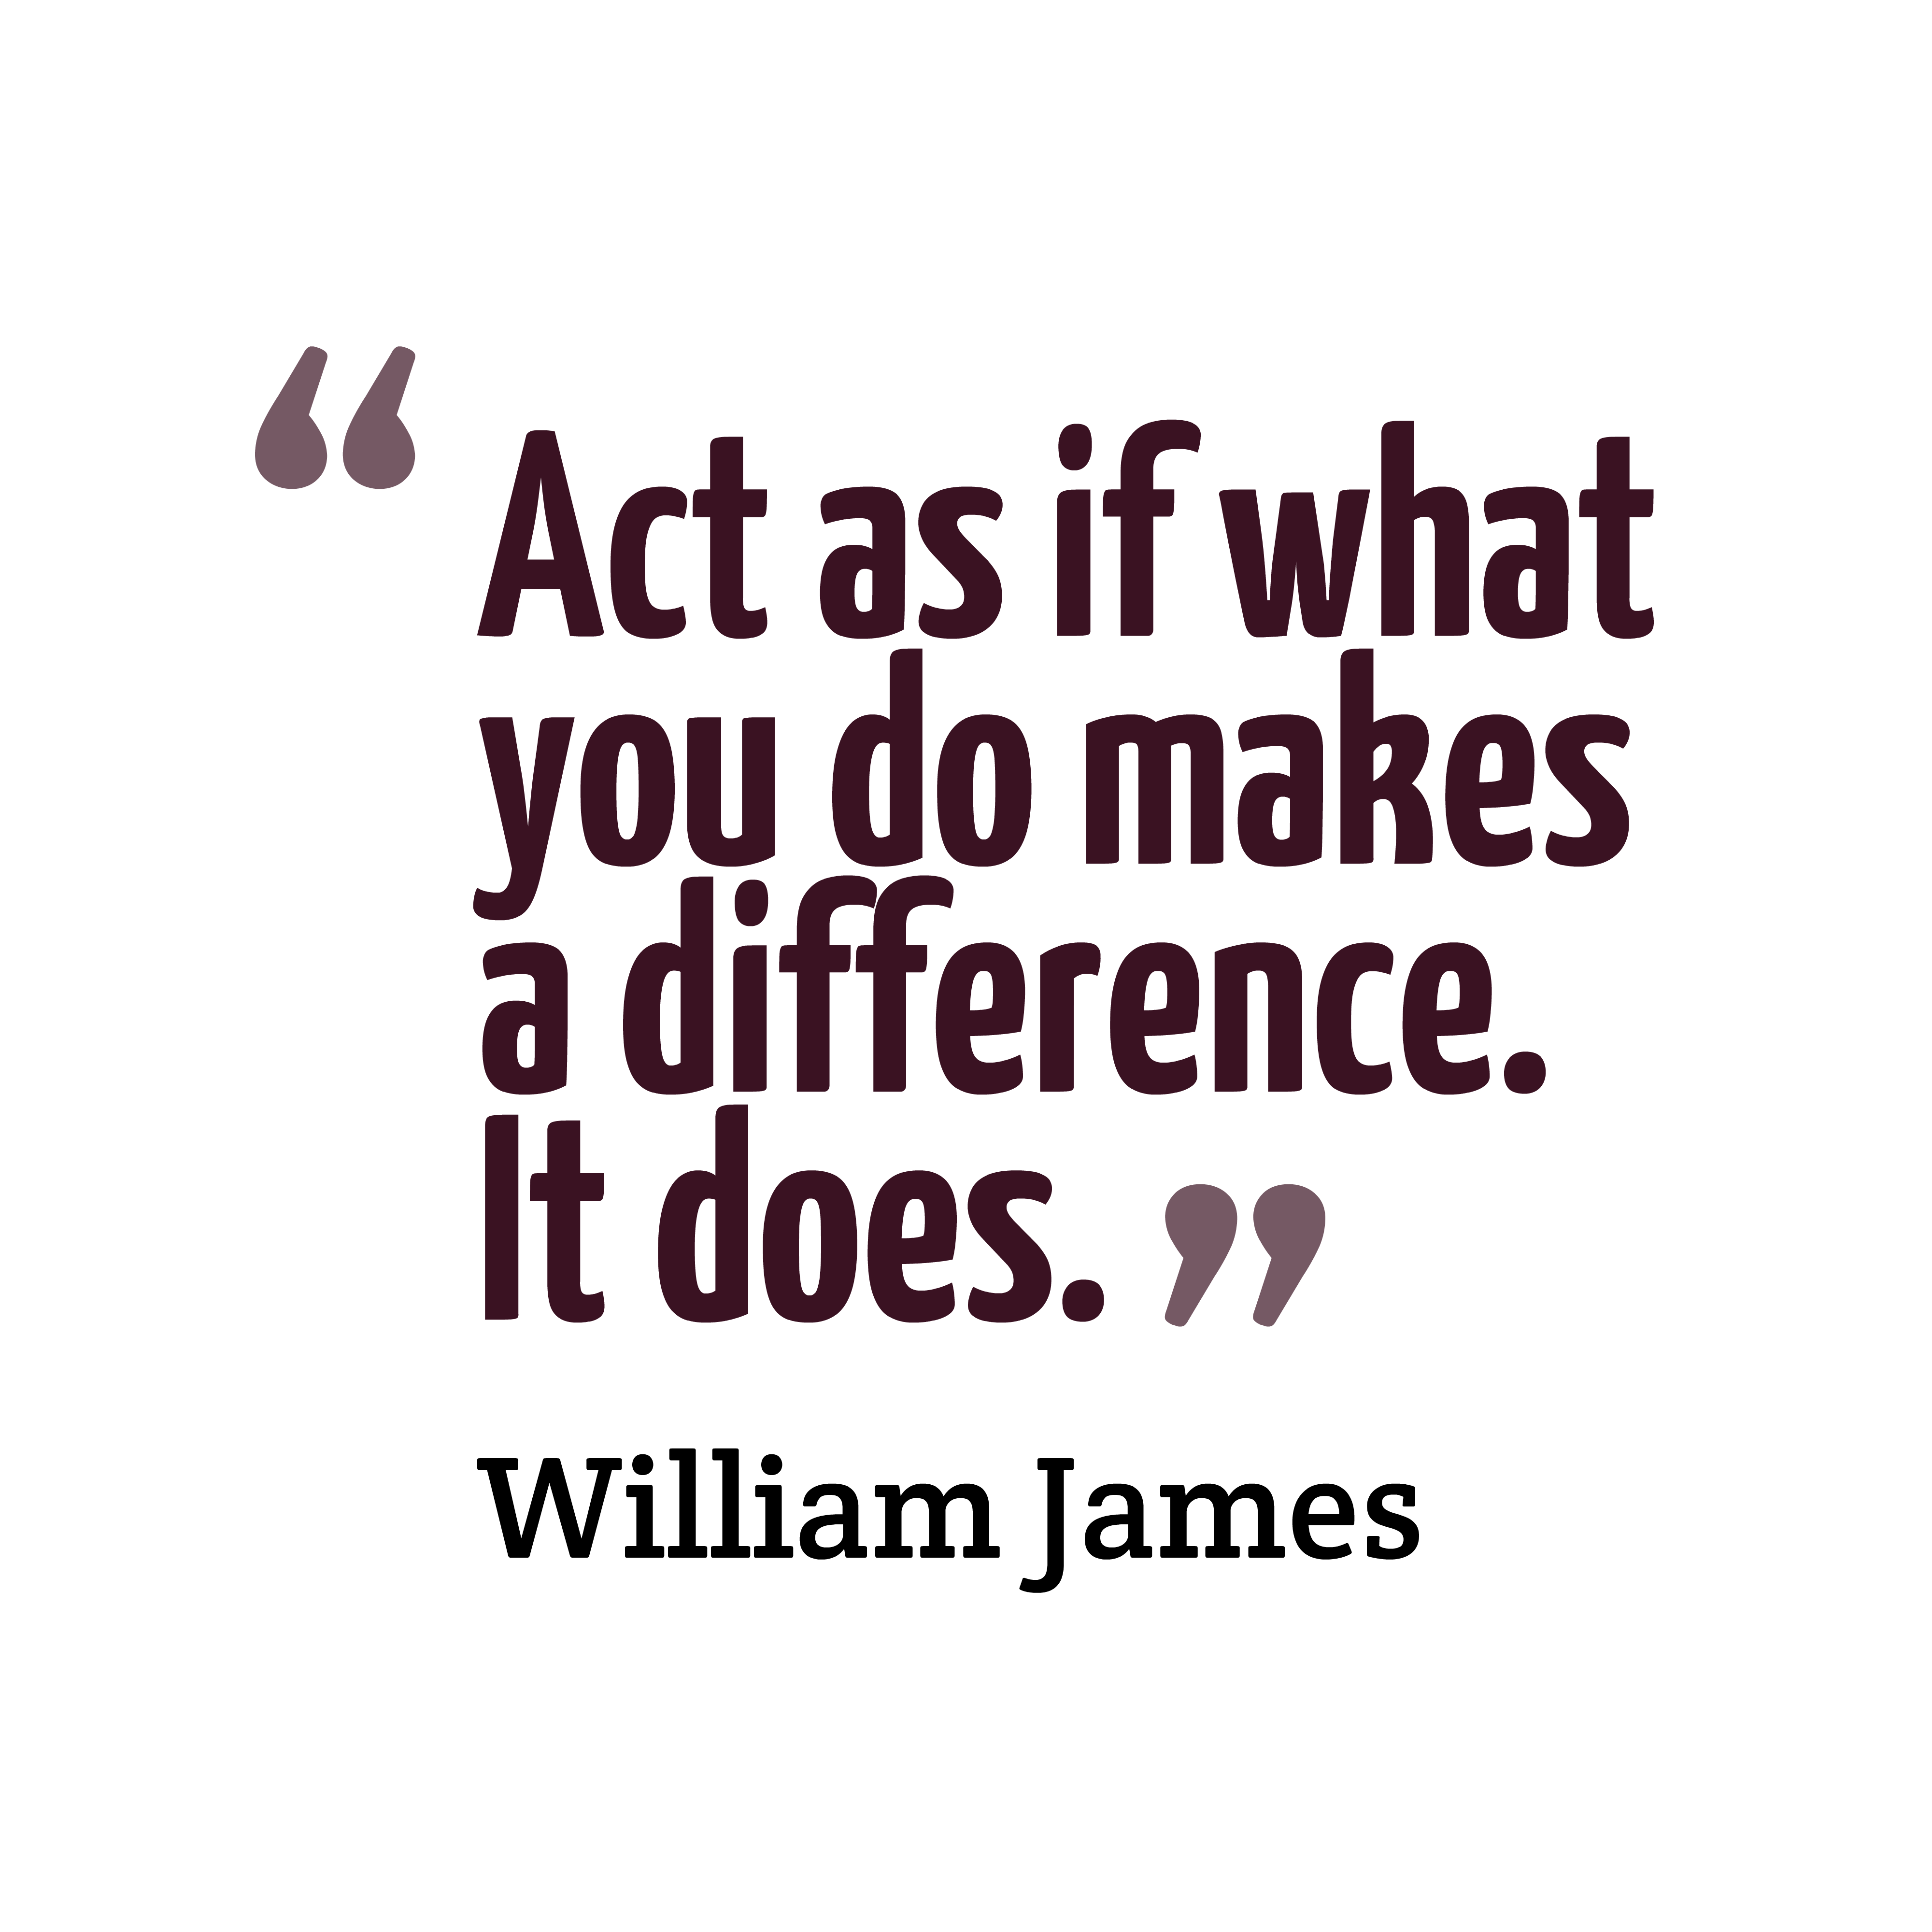 Quotes image of Act as if what you do makes a difference. It does.